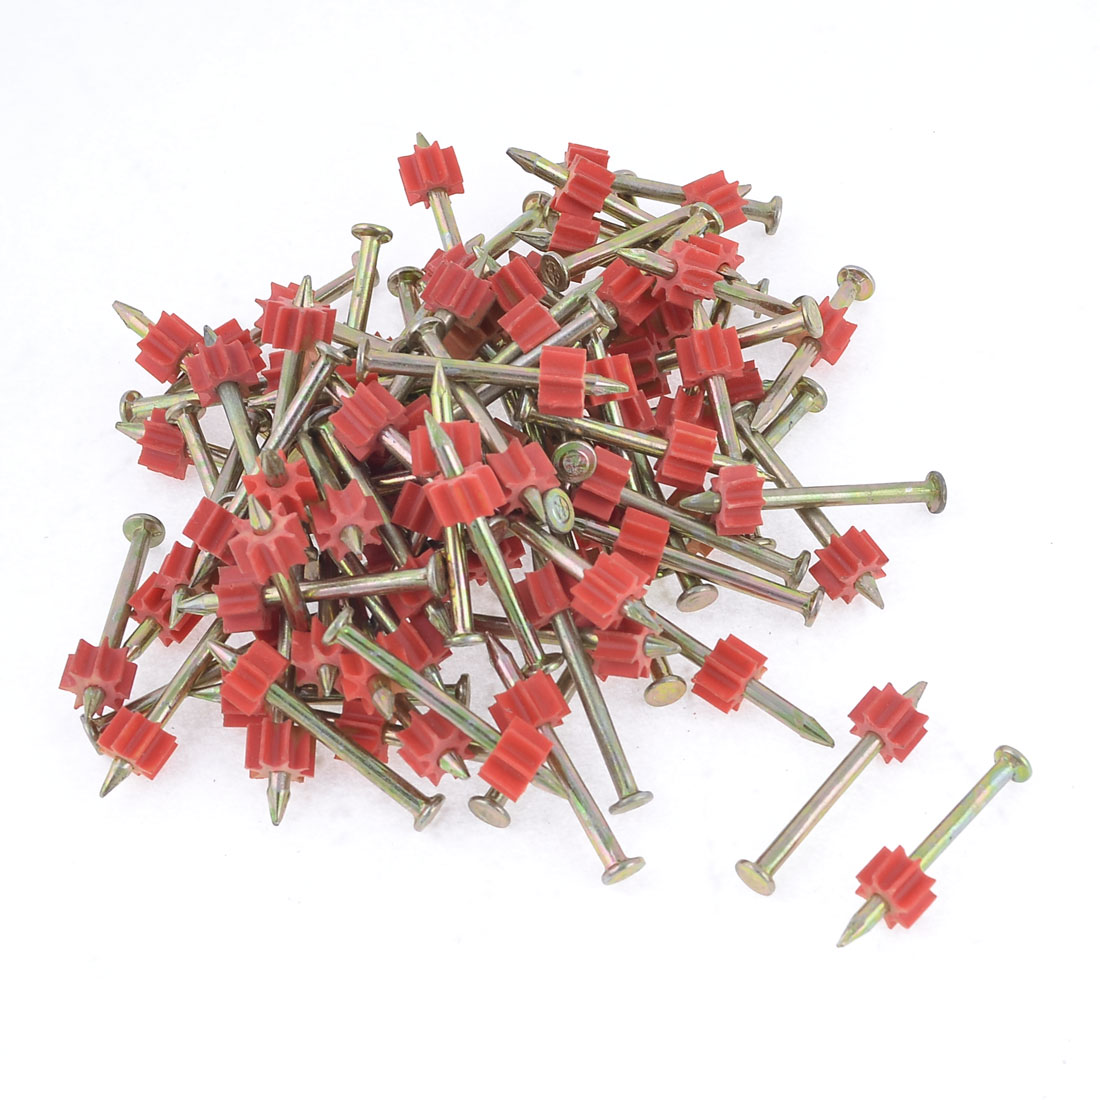 90 Pcs 2.8mm Dia Shank 38mm Length Power Hammer Drive Pins Fasteners